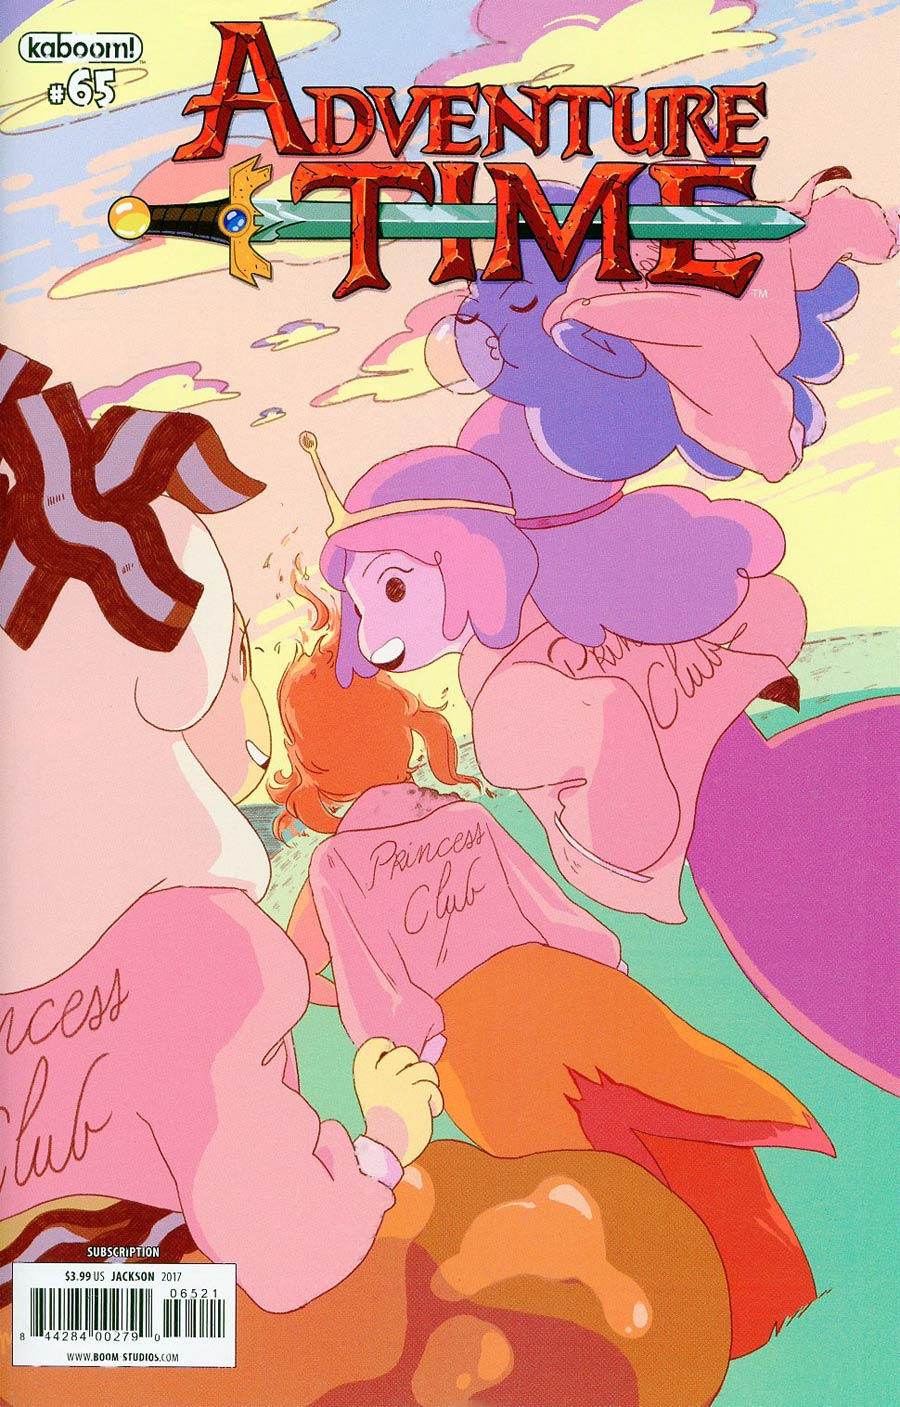 Adventure Time #65 Cover B Variant E Jackson Subscription Cover